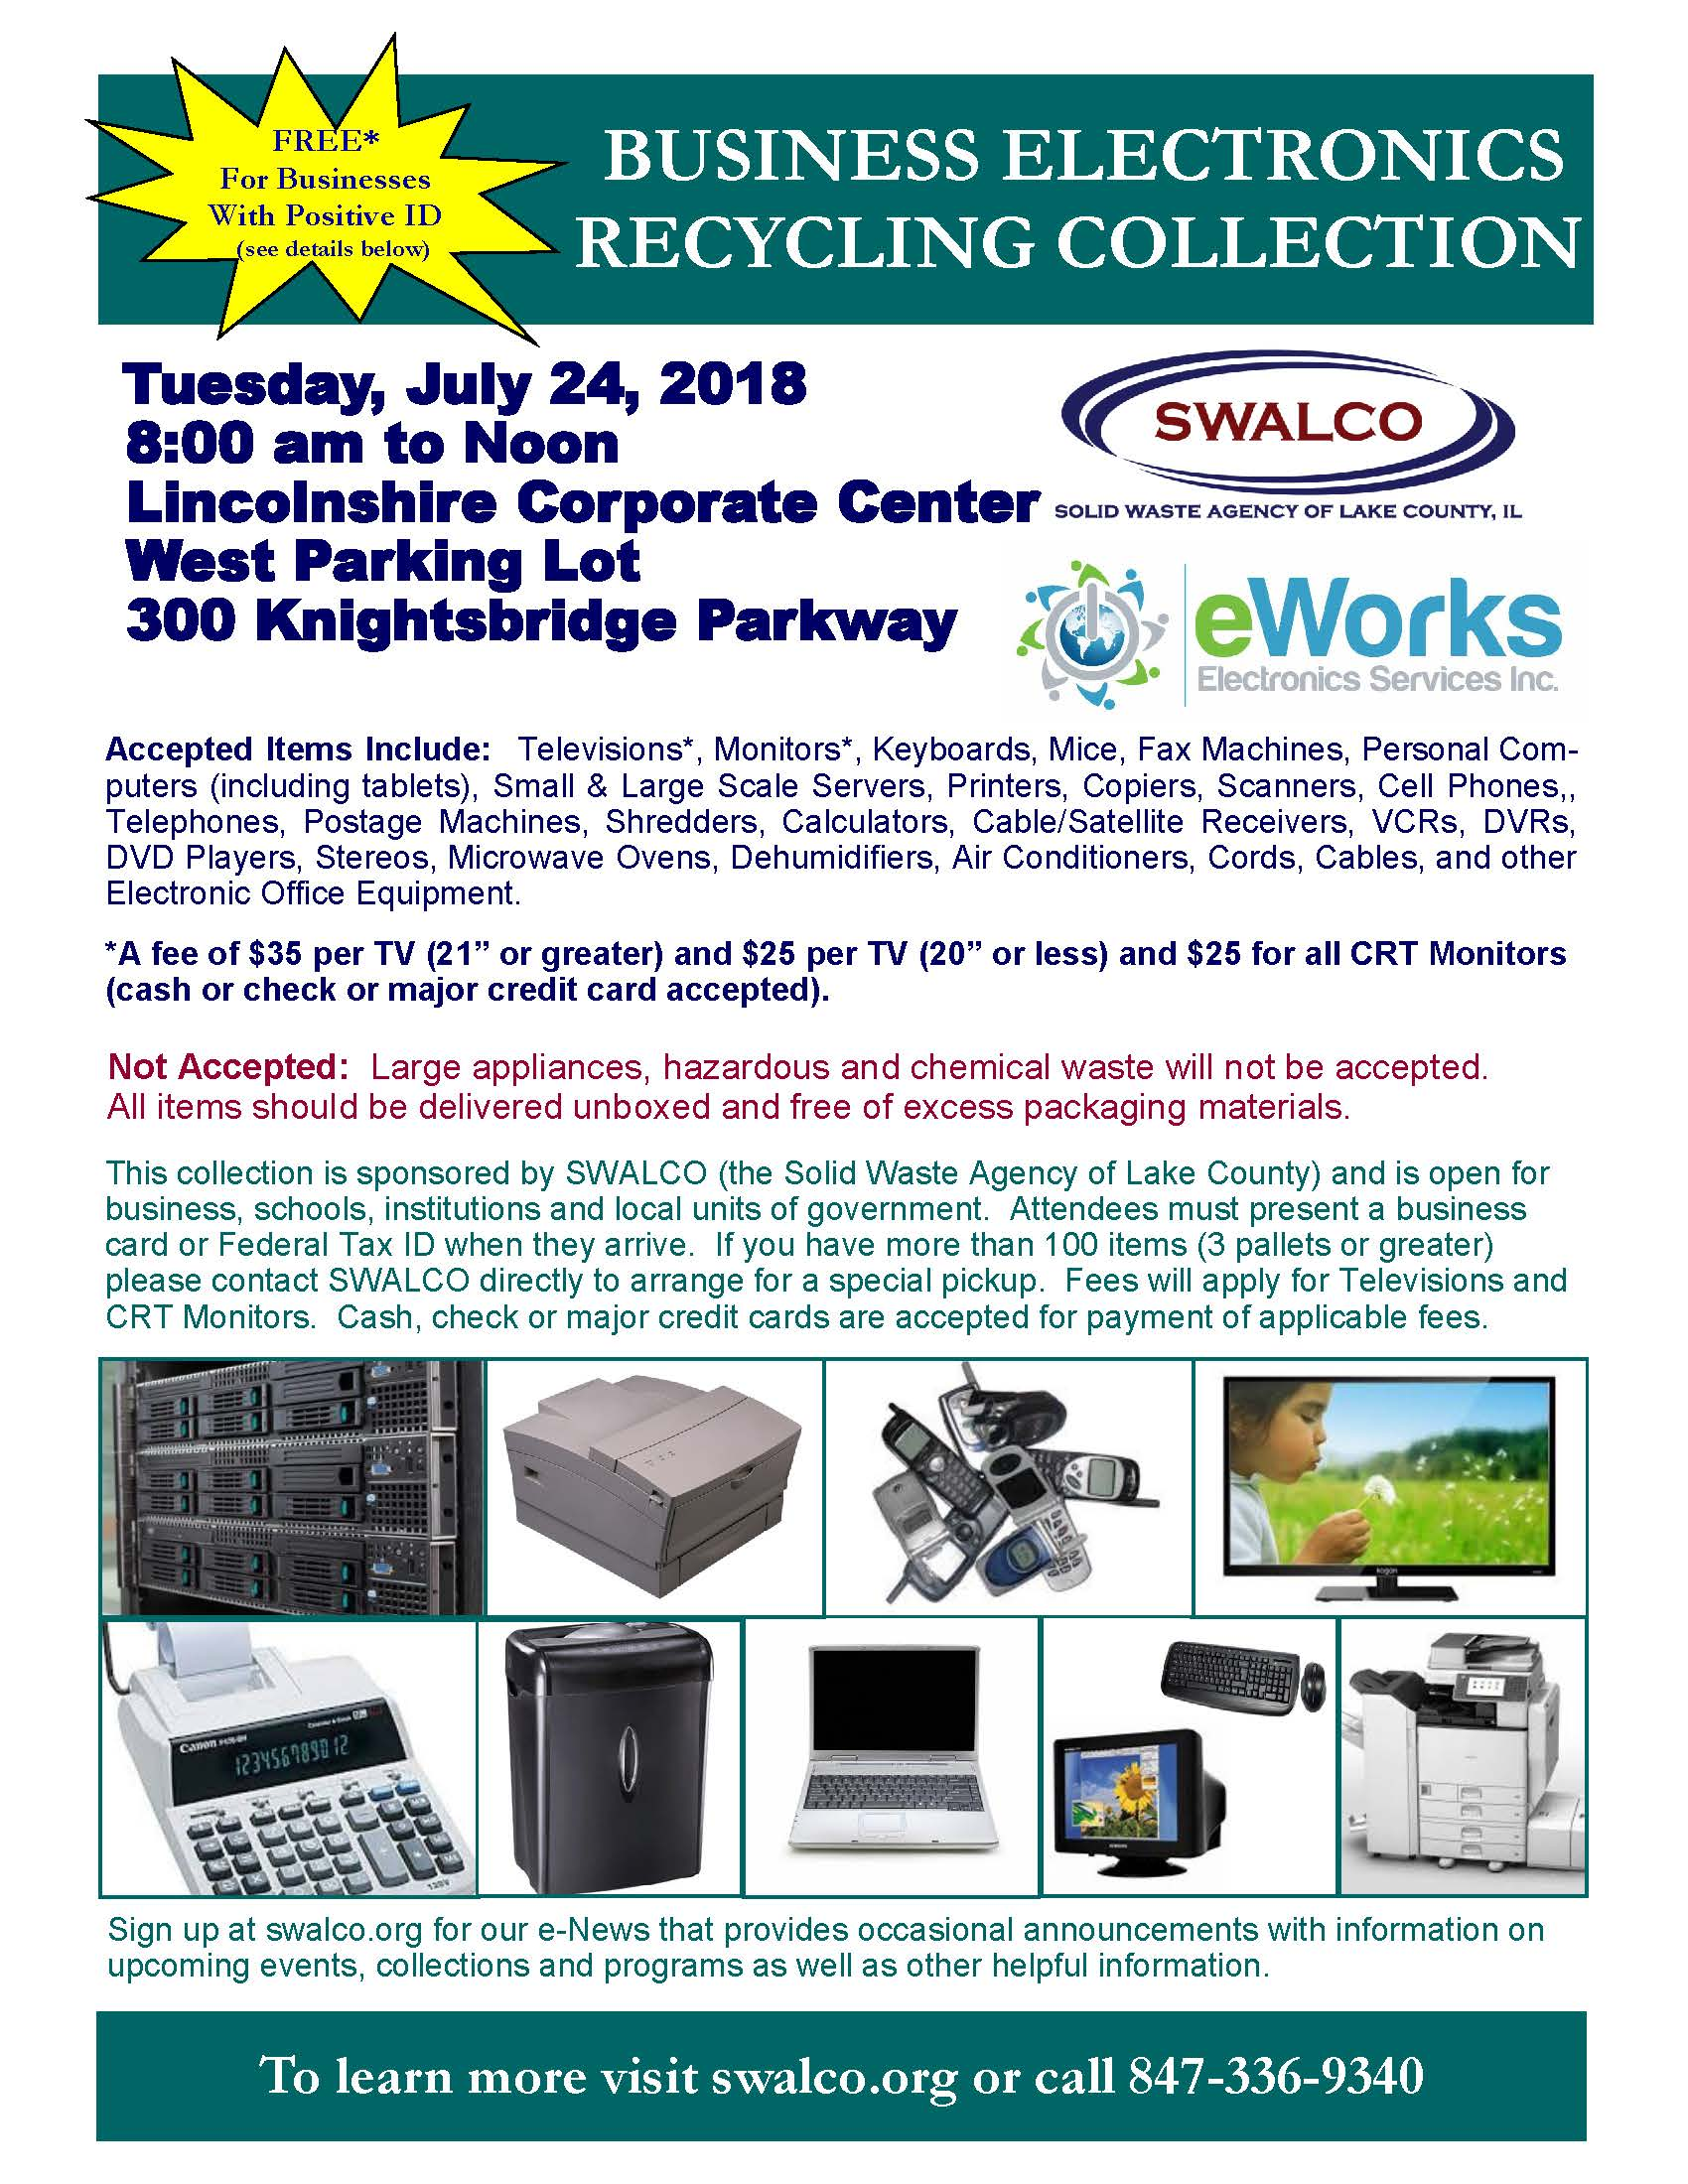 Electronics E-Works Village of Lincolnshire July 24, 2018